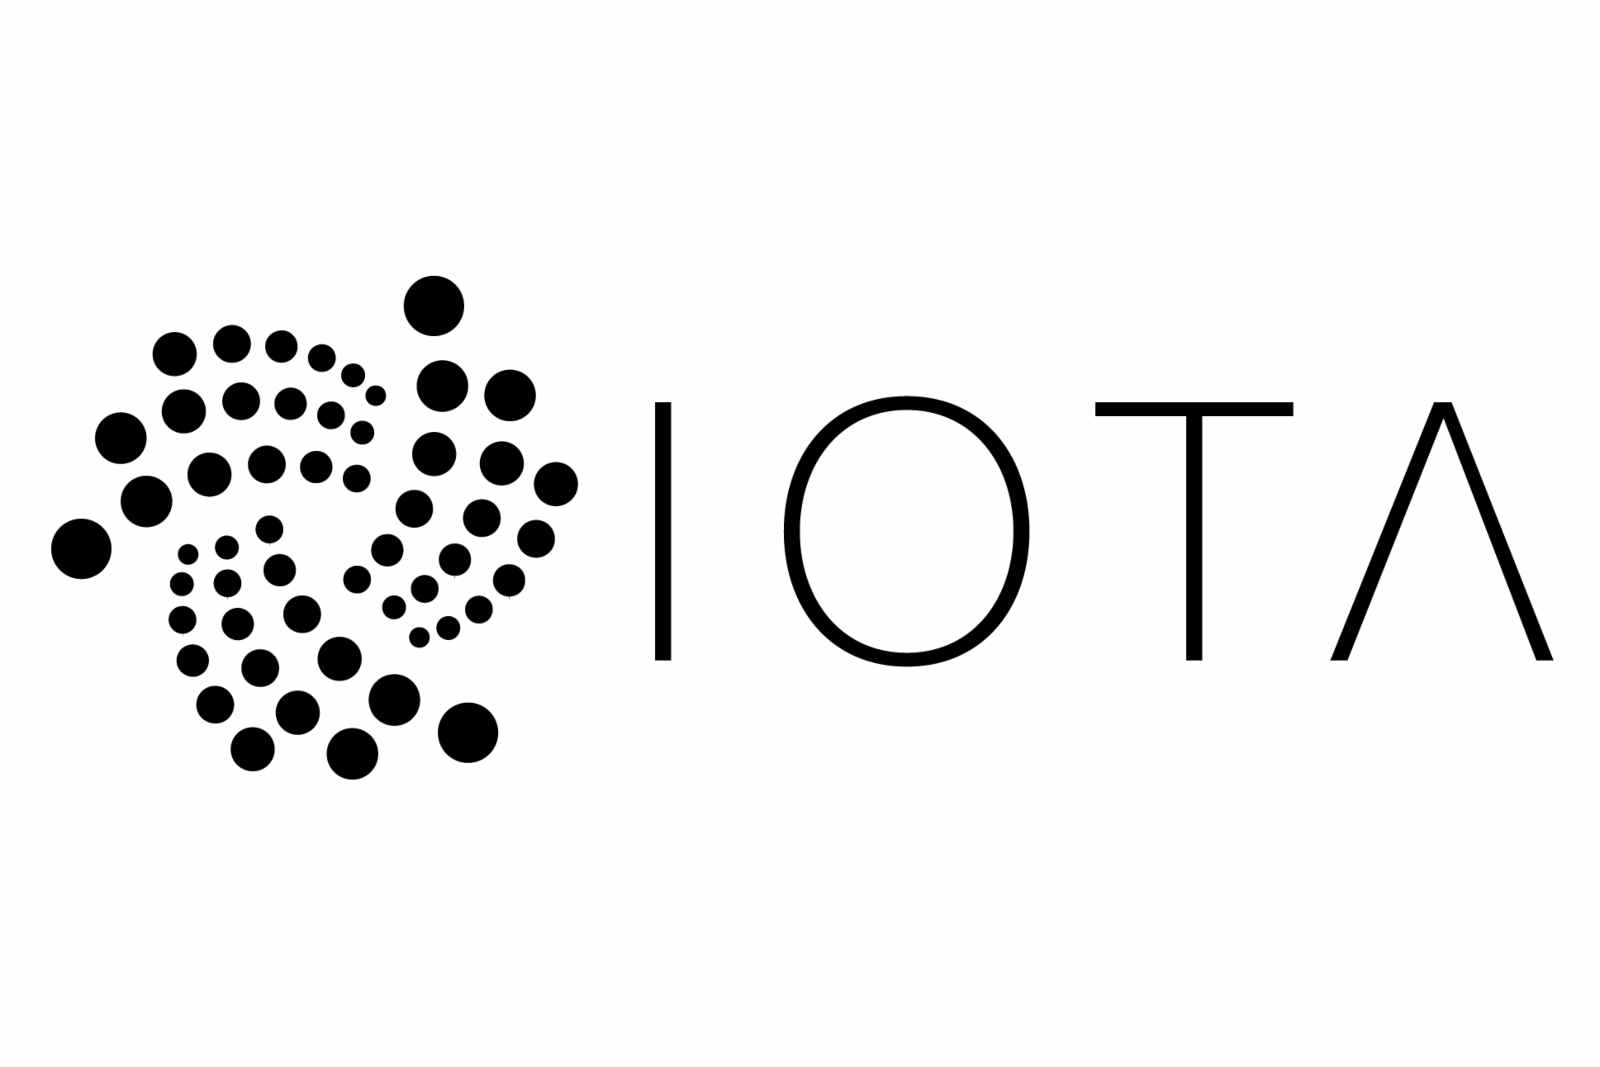 IOTA's WordPress Plugin Could Increase its Accessibility and Adoption